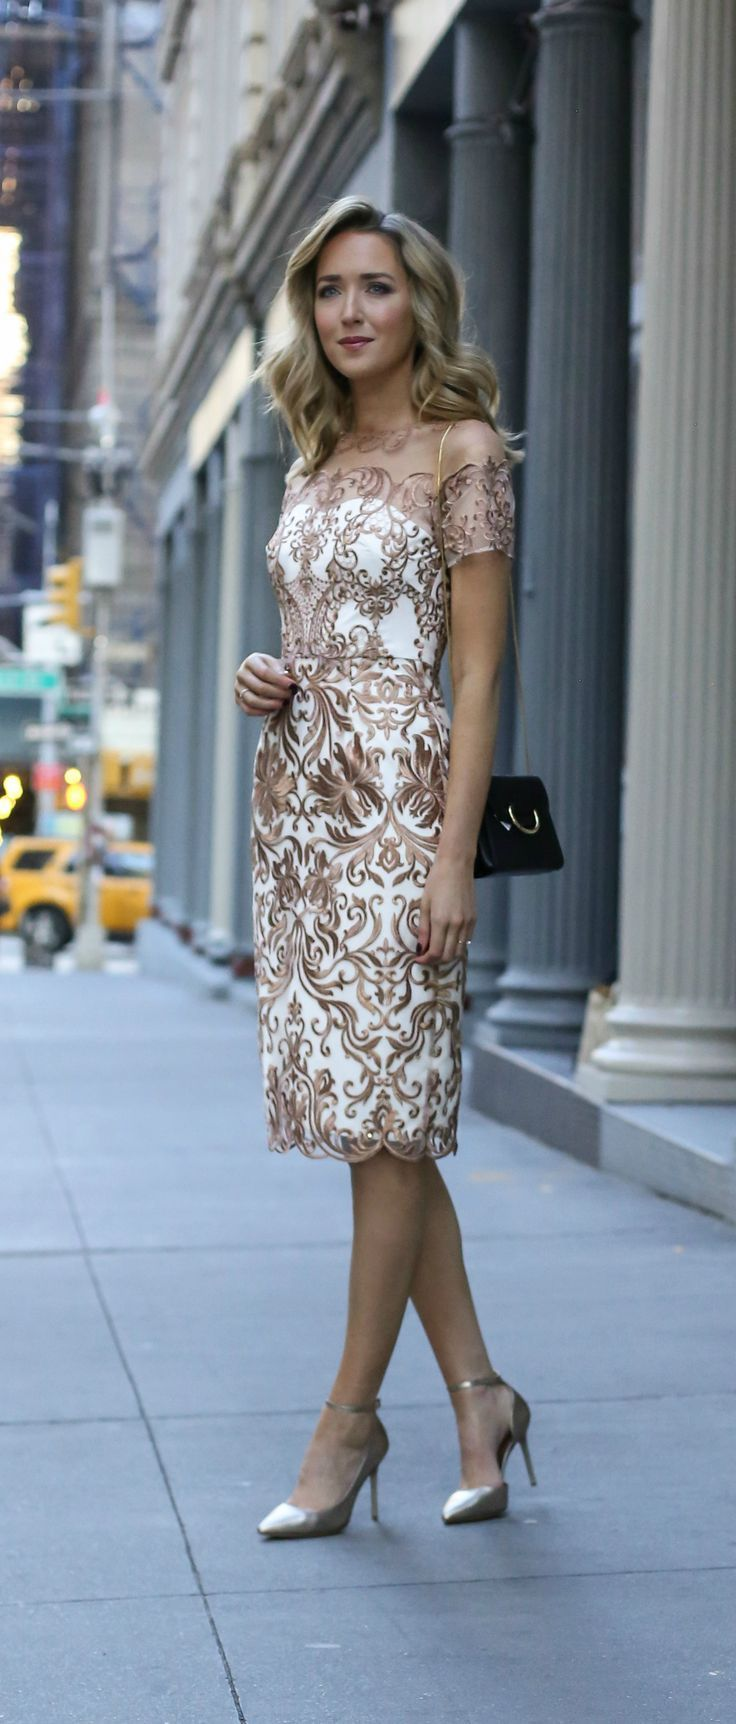 Rehearsal Dinner Dress for the Bride. Rose gold and white lace sheath dress and gold ankle strap pumps.